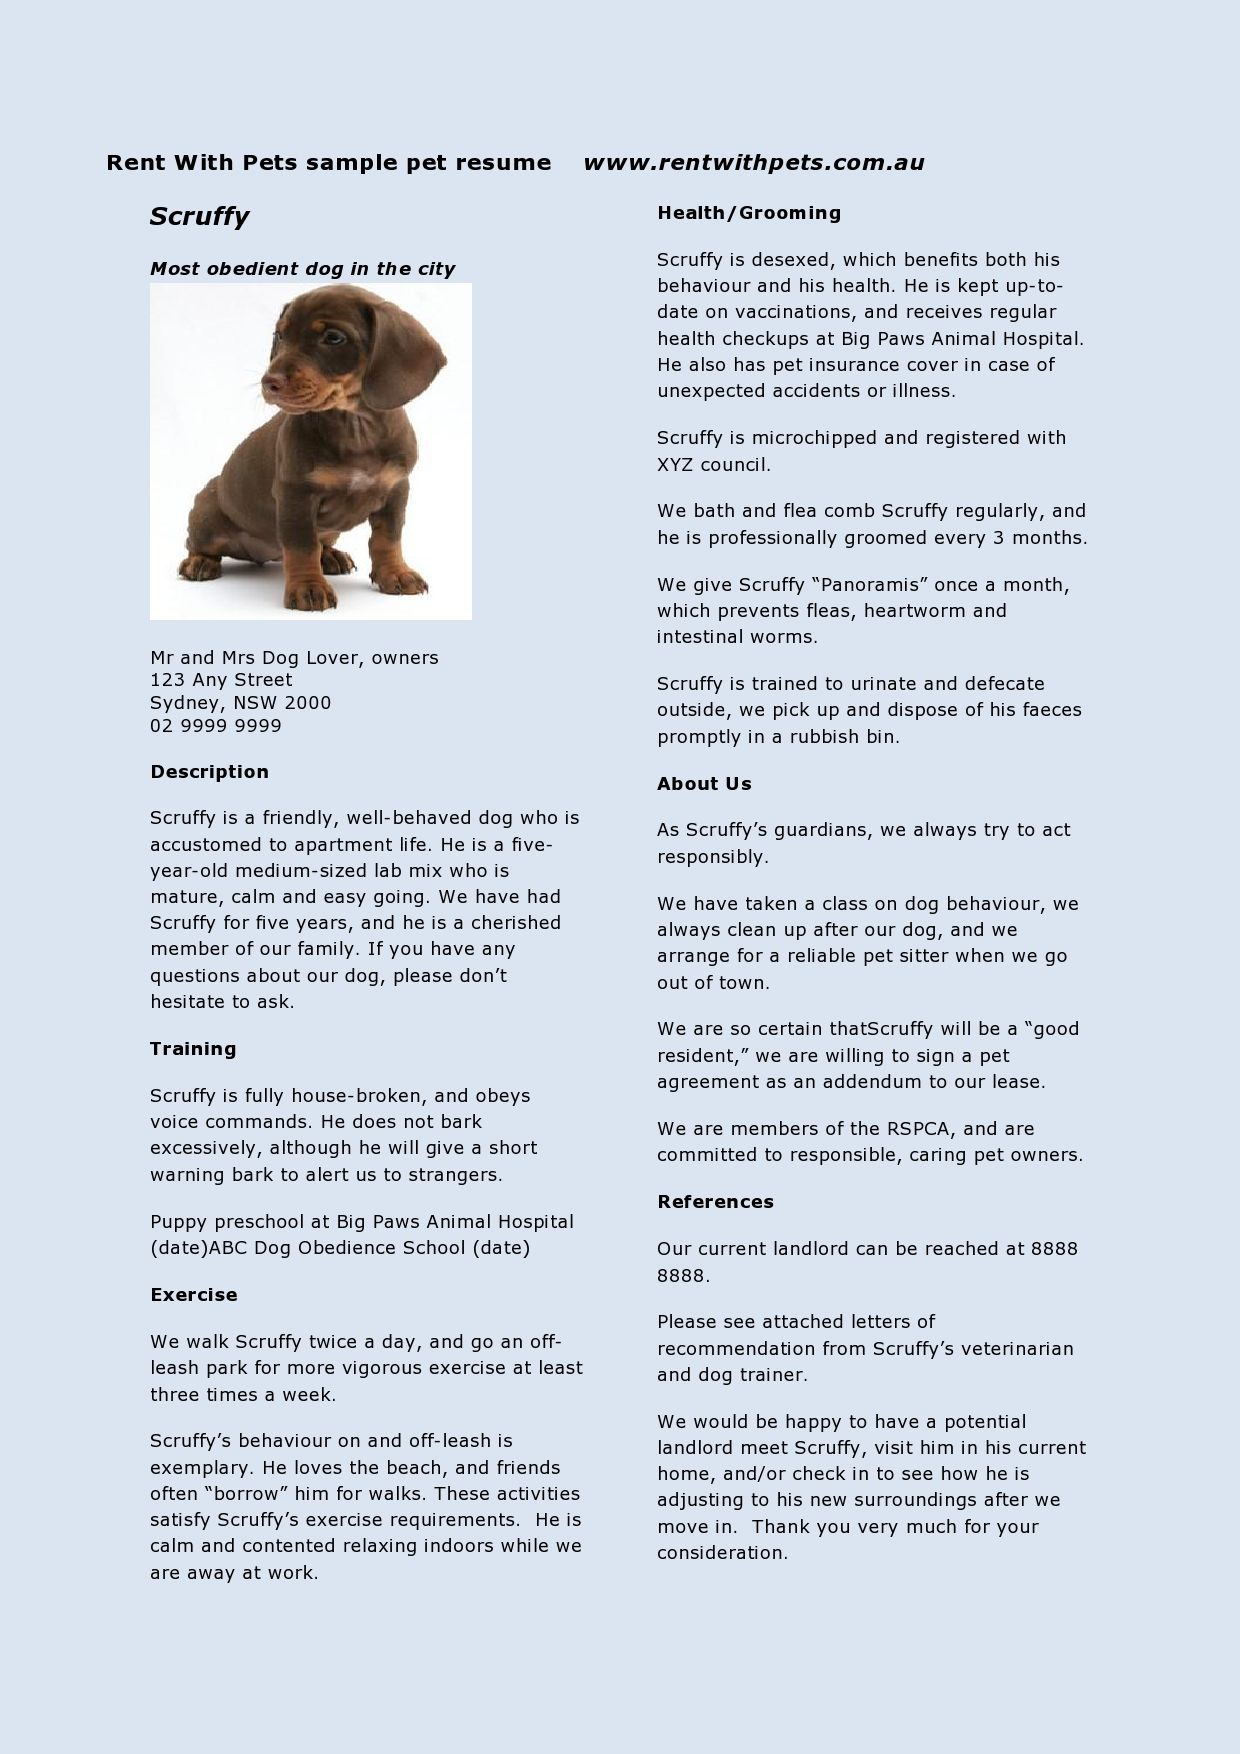 rent with pets pet resume